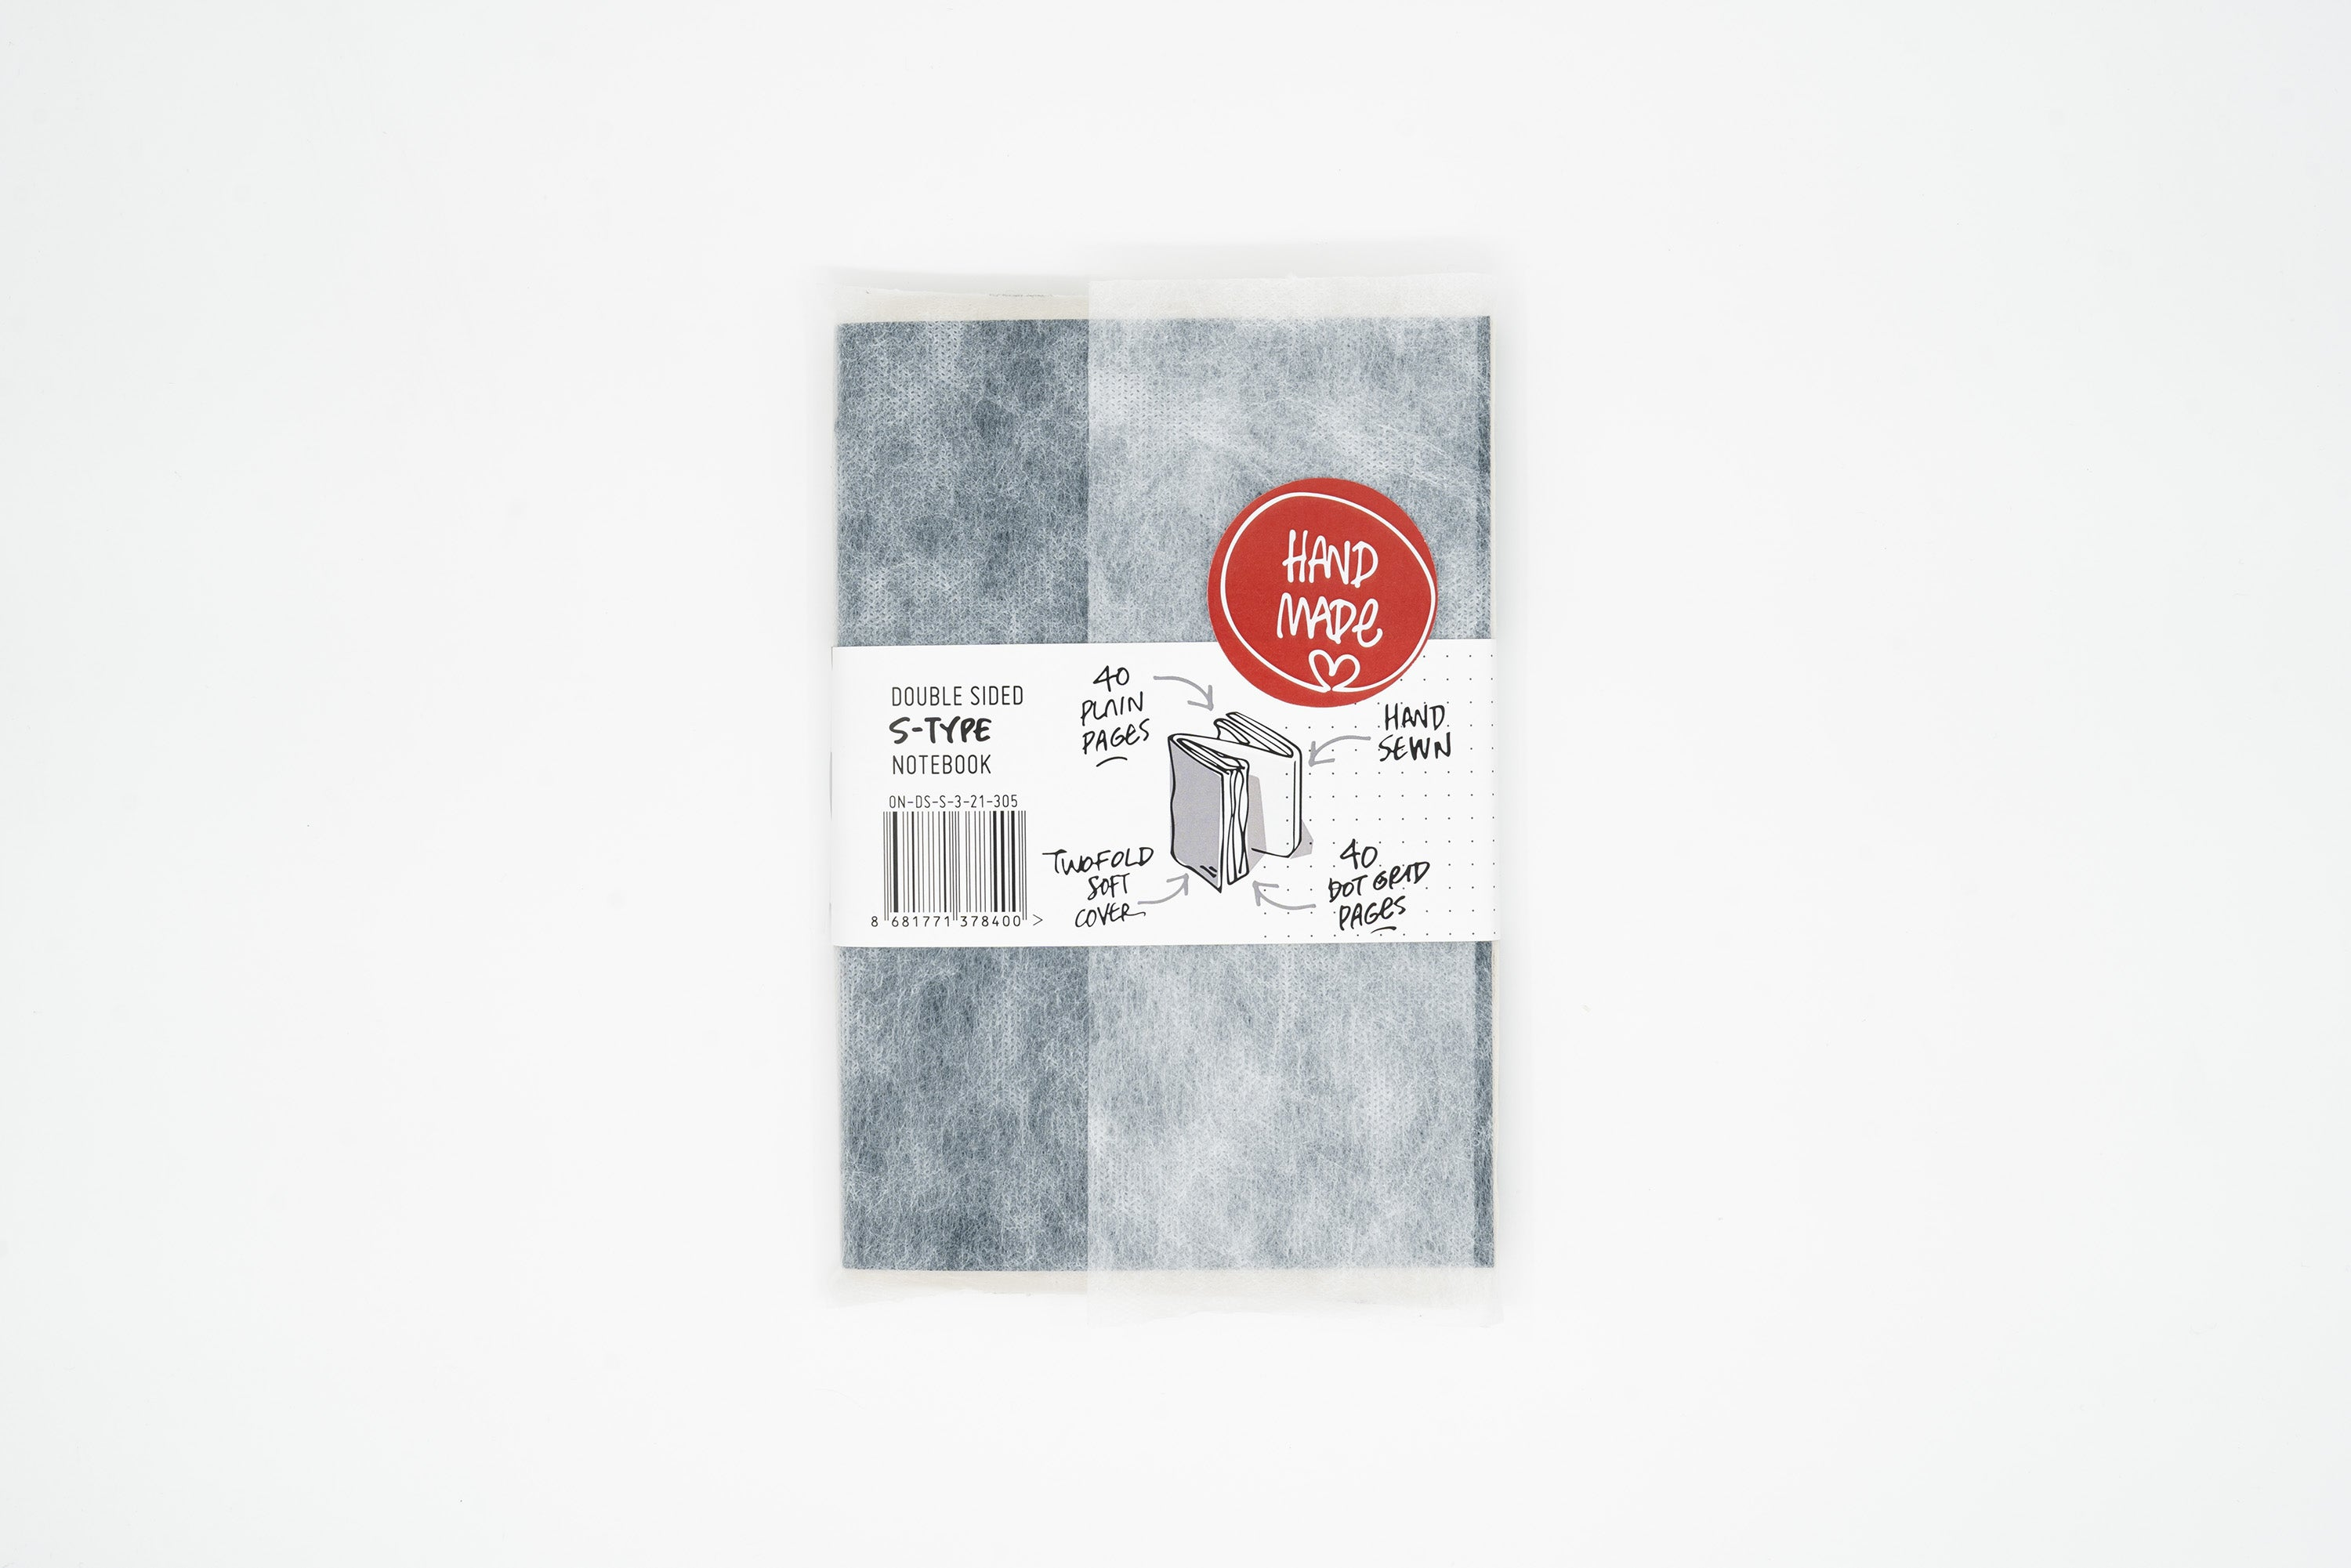 Double Sided Notebook - S Type - Slate Blue § Gray